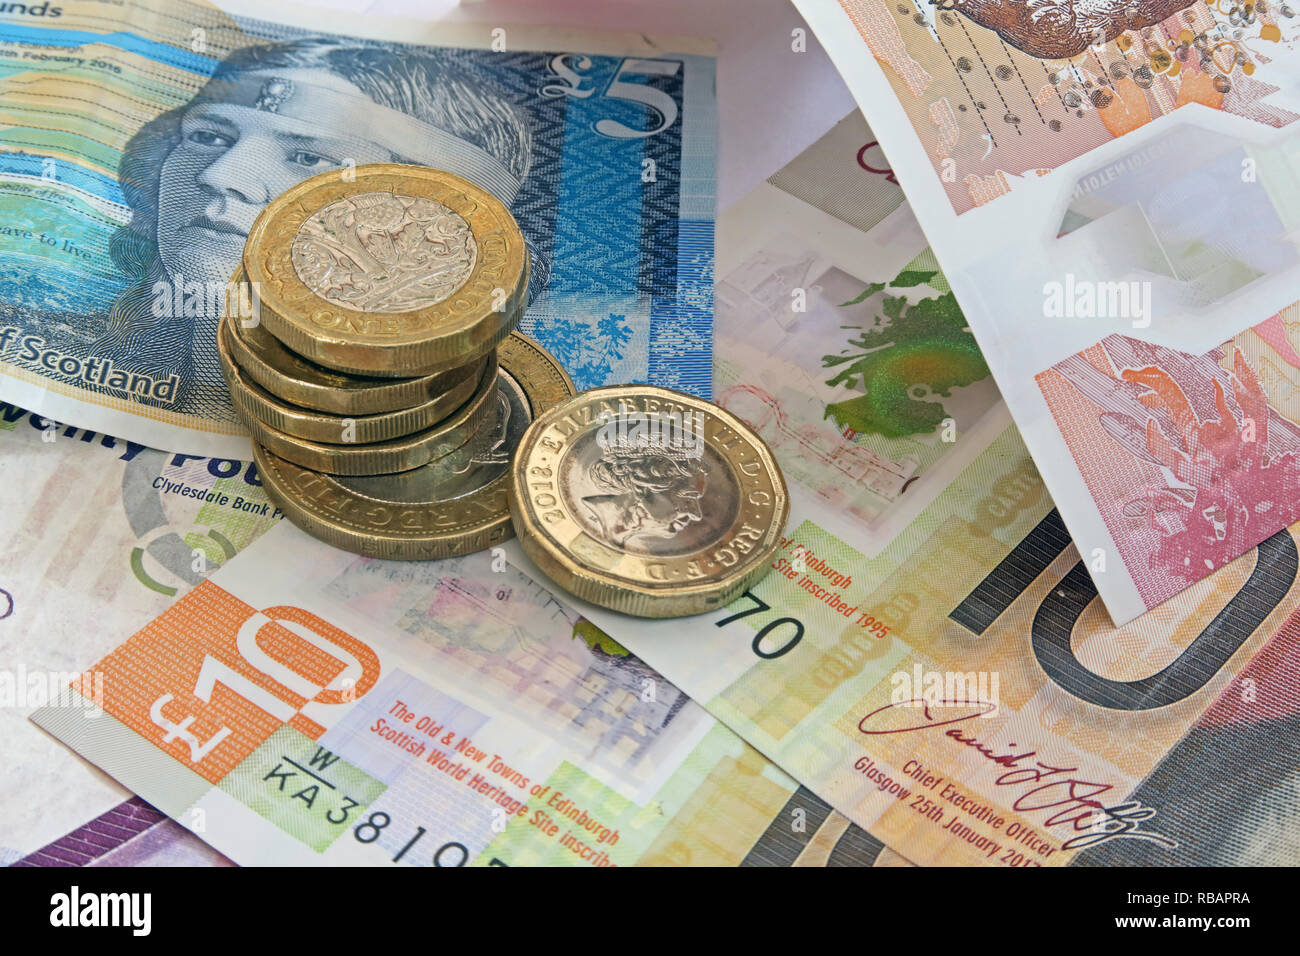 Bank Of Scotland, Clydesdale & RBS plastic £5 £10 Five pound and ten pound bank notes, with coins - Stock Image